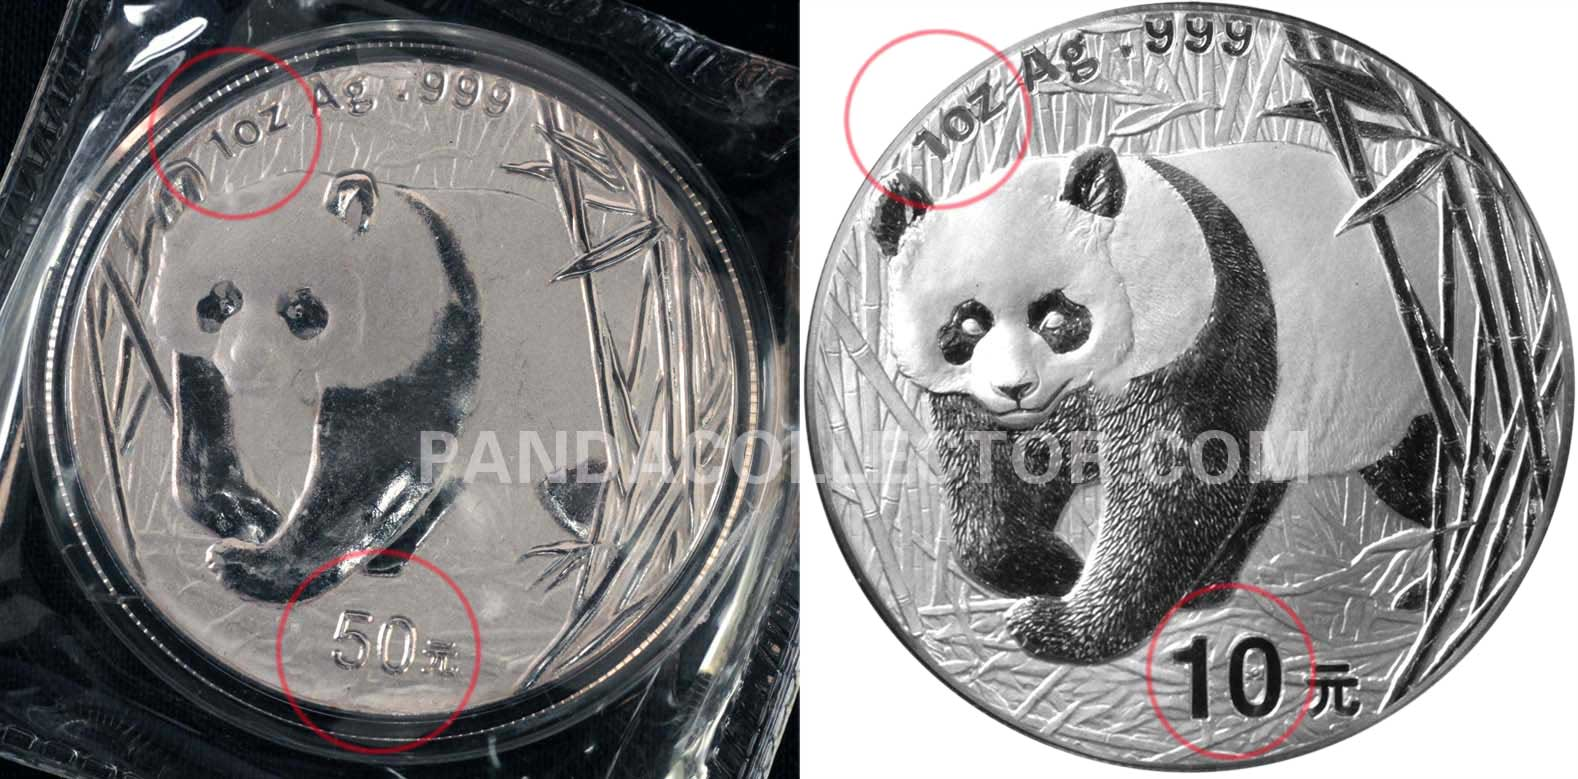 2001 Counterfeit 1 oz. Silver Panda